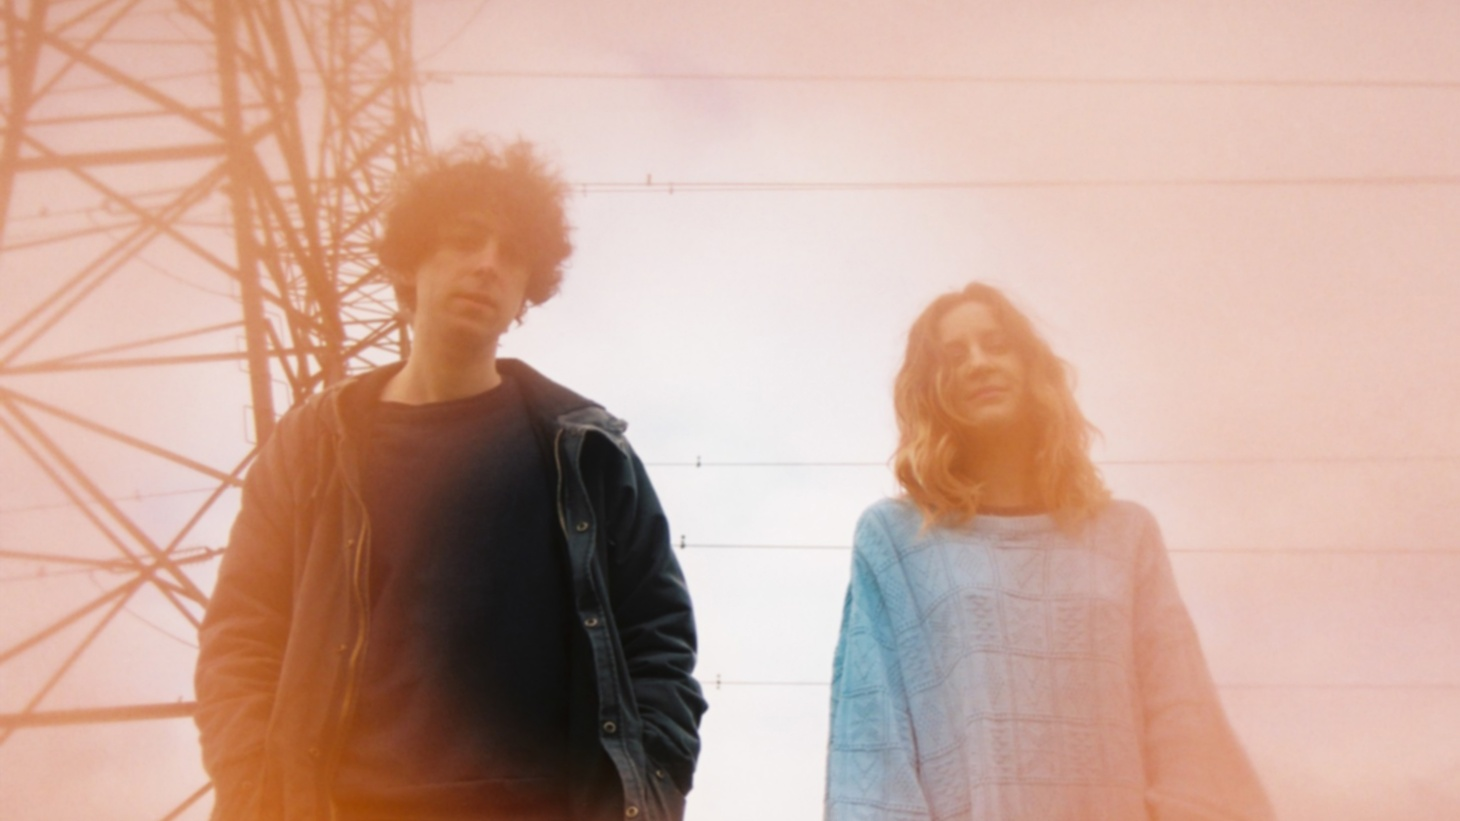 """The sophomore album from Beliefs, titled Leaper, ebbs and flows with varying levels of fuzzy guitars and driving rhythms, and the perfect blend of their male/female vocals keep things modern. 25 years from now, when """"dream pop"""" returns from a number of years of exile, it may very be records like Leaper that inspire the next generation of shoe-gazers."""